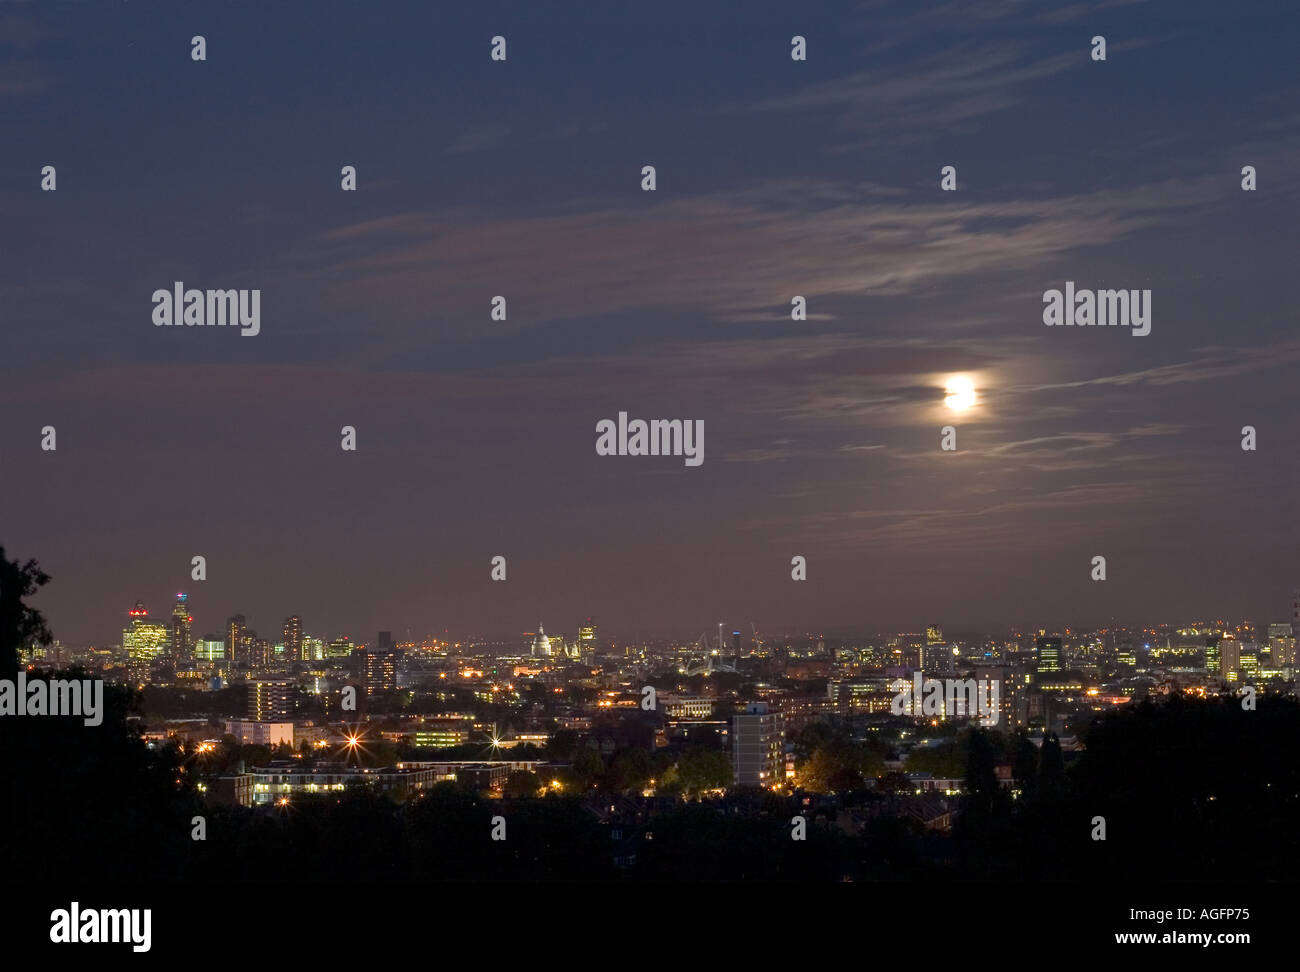 London Cityscape seen at night from Parliament Hill. Hampstead Heath, London, England - Stock Image